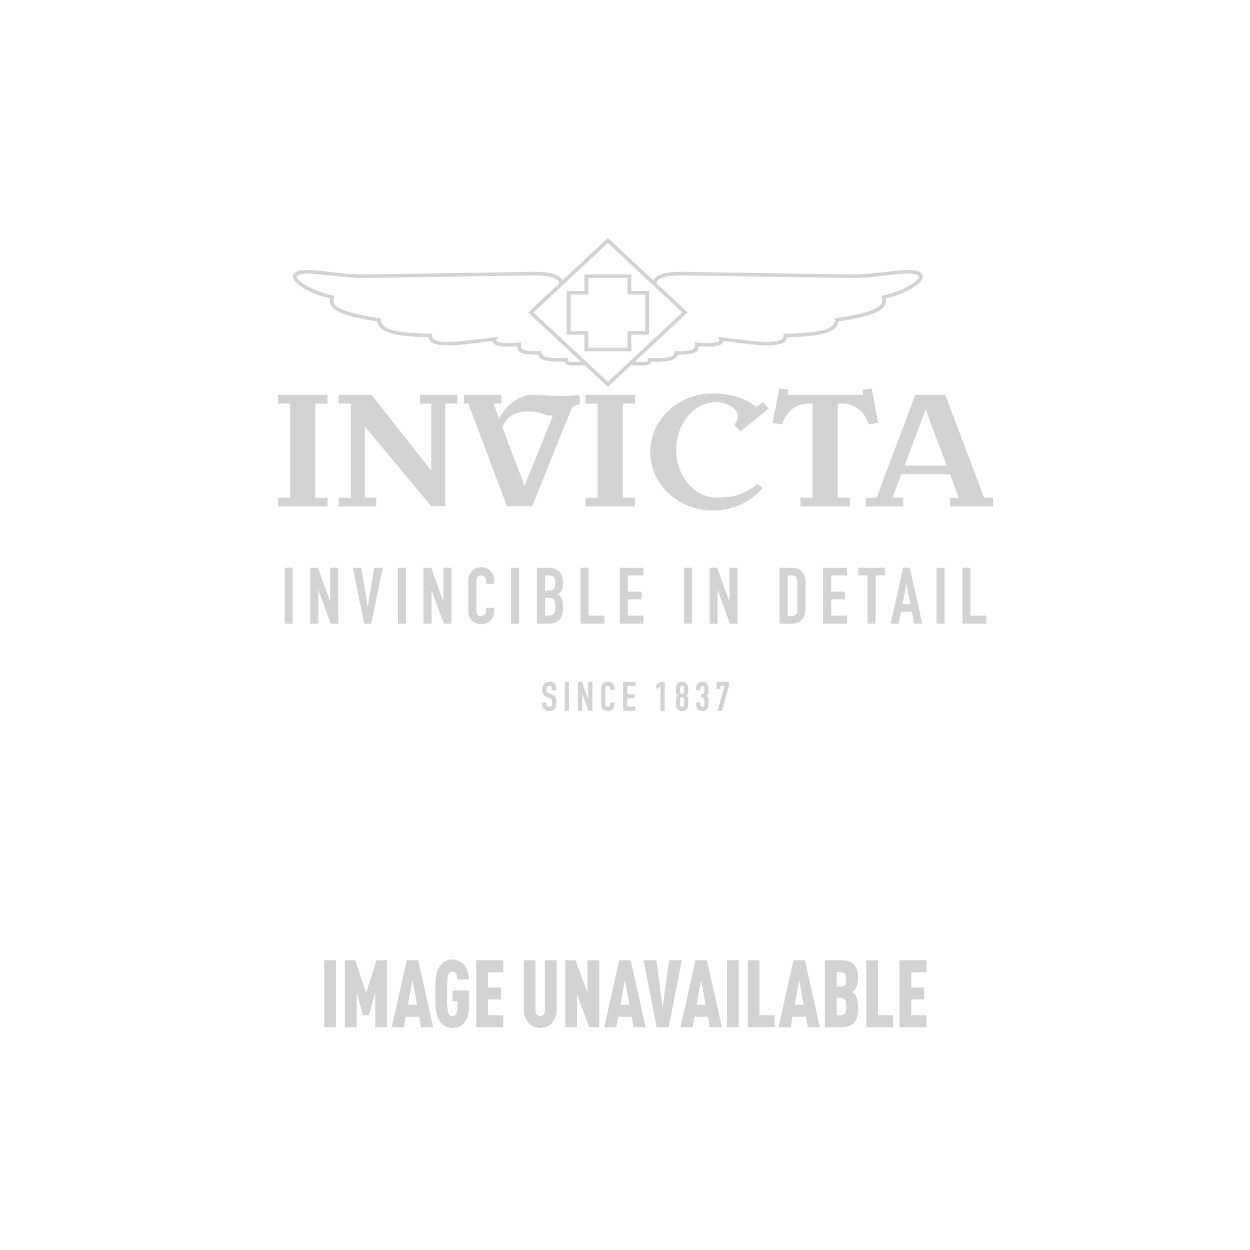 Invicta Angel Quartz Watch - Stainless Steel case with Black tone Silicone band - Model 0733